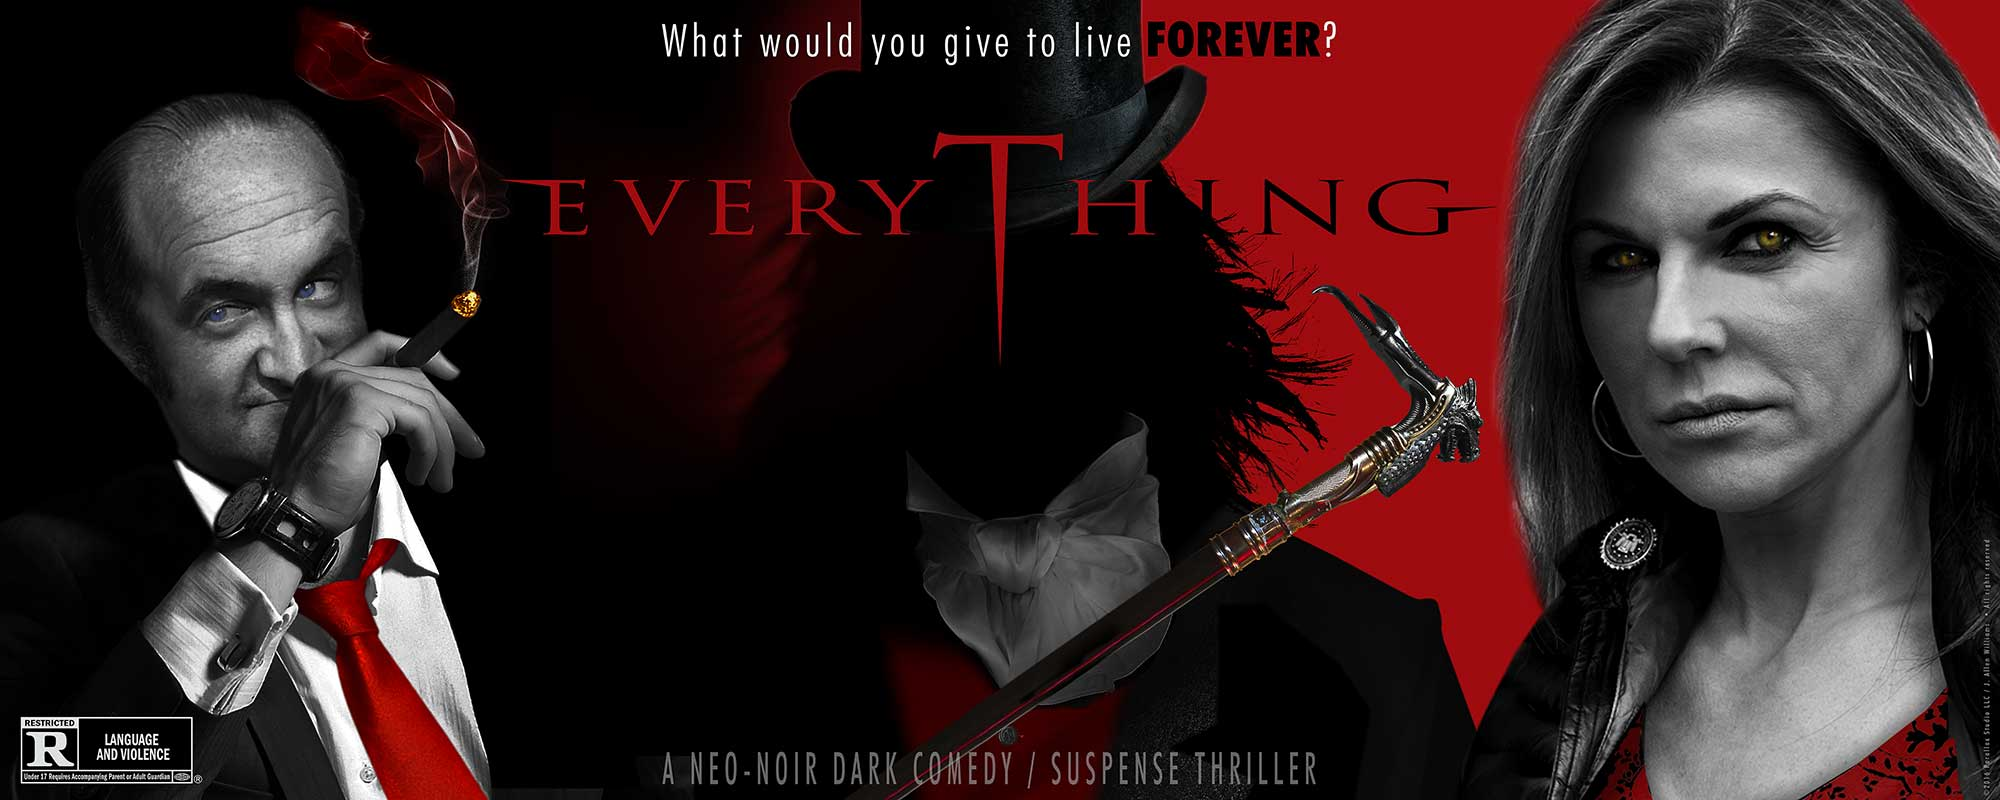 What would you give to live forever? EVERYTHING - a Neo-noir dark comedy / suspense thriller